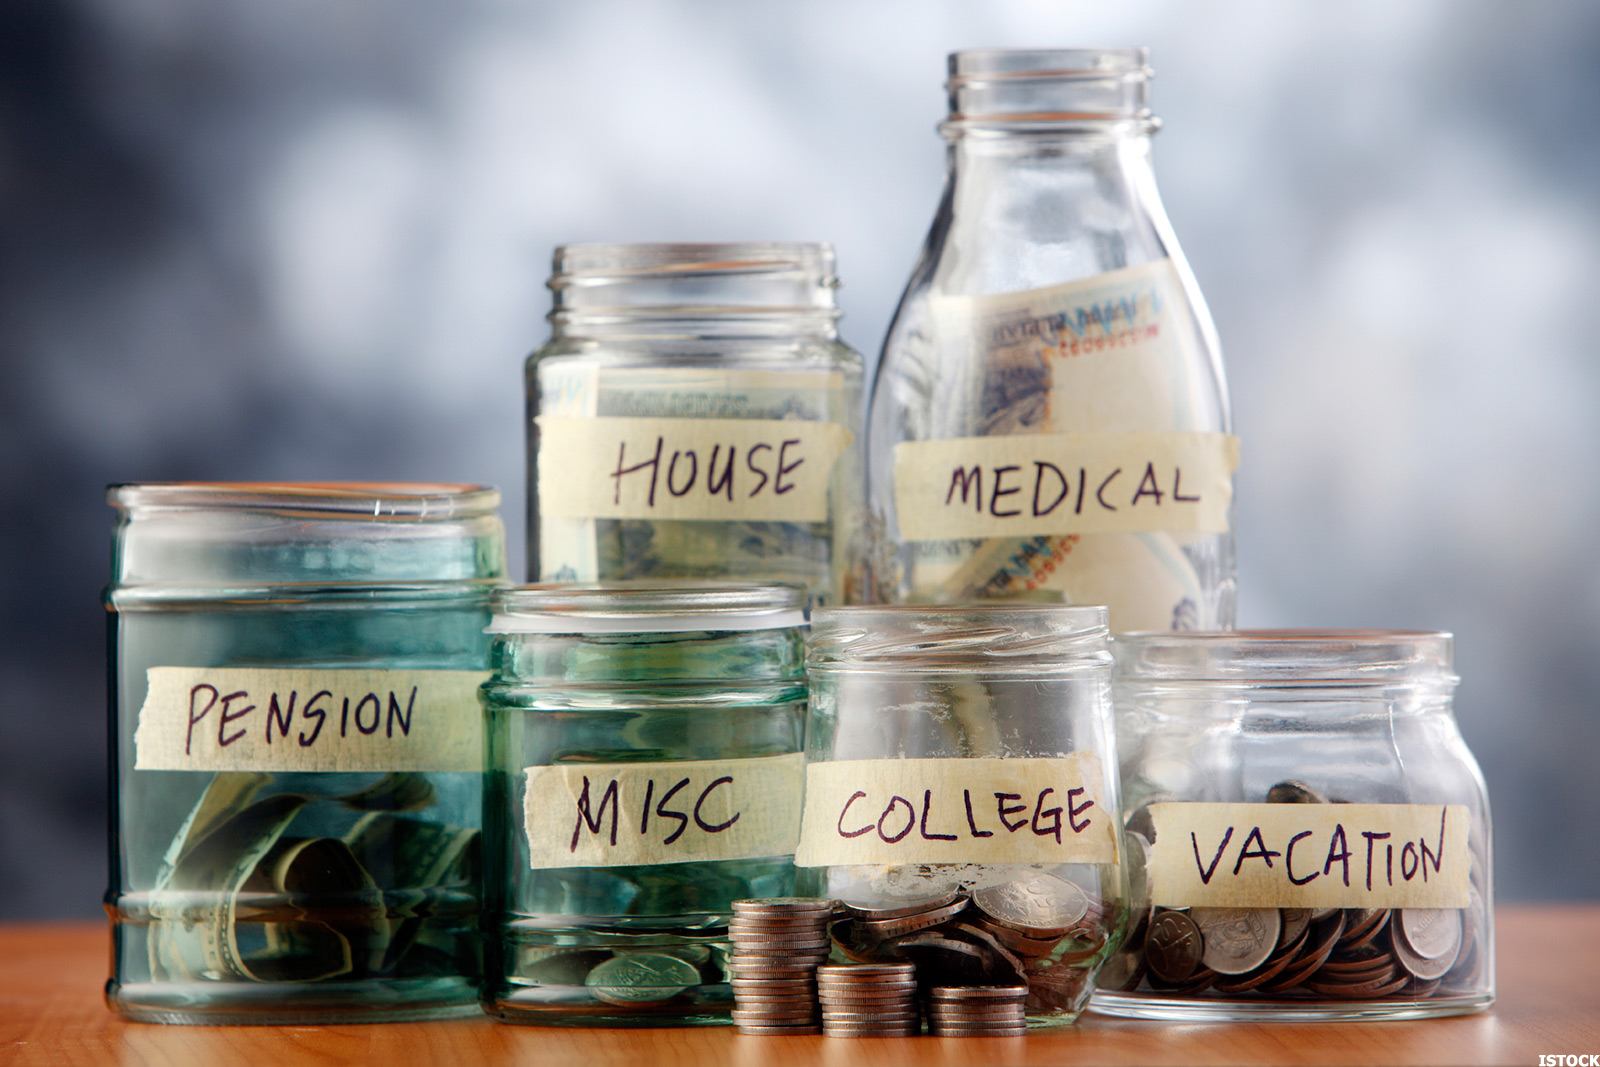 Taking control of your personal finances